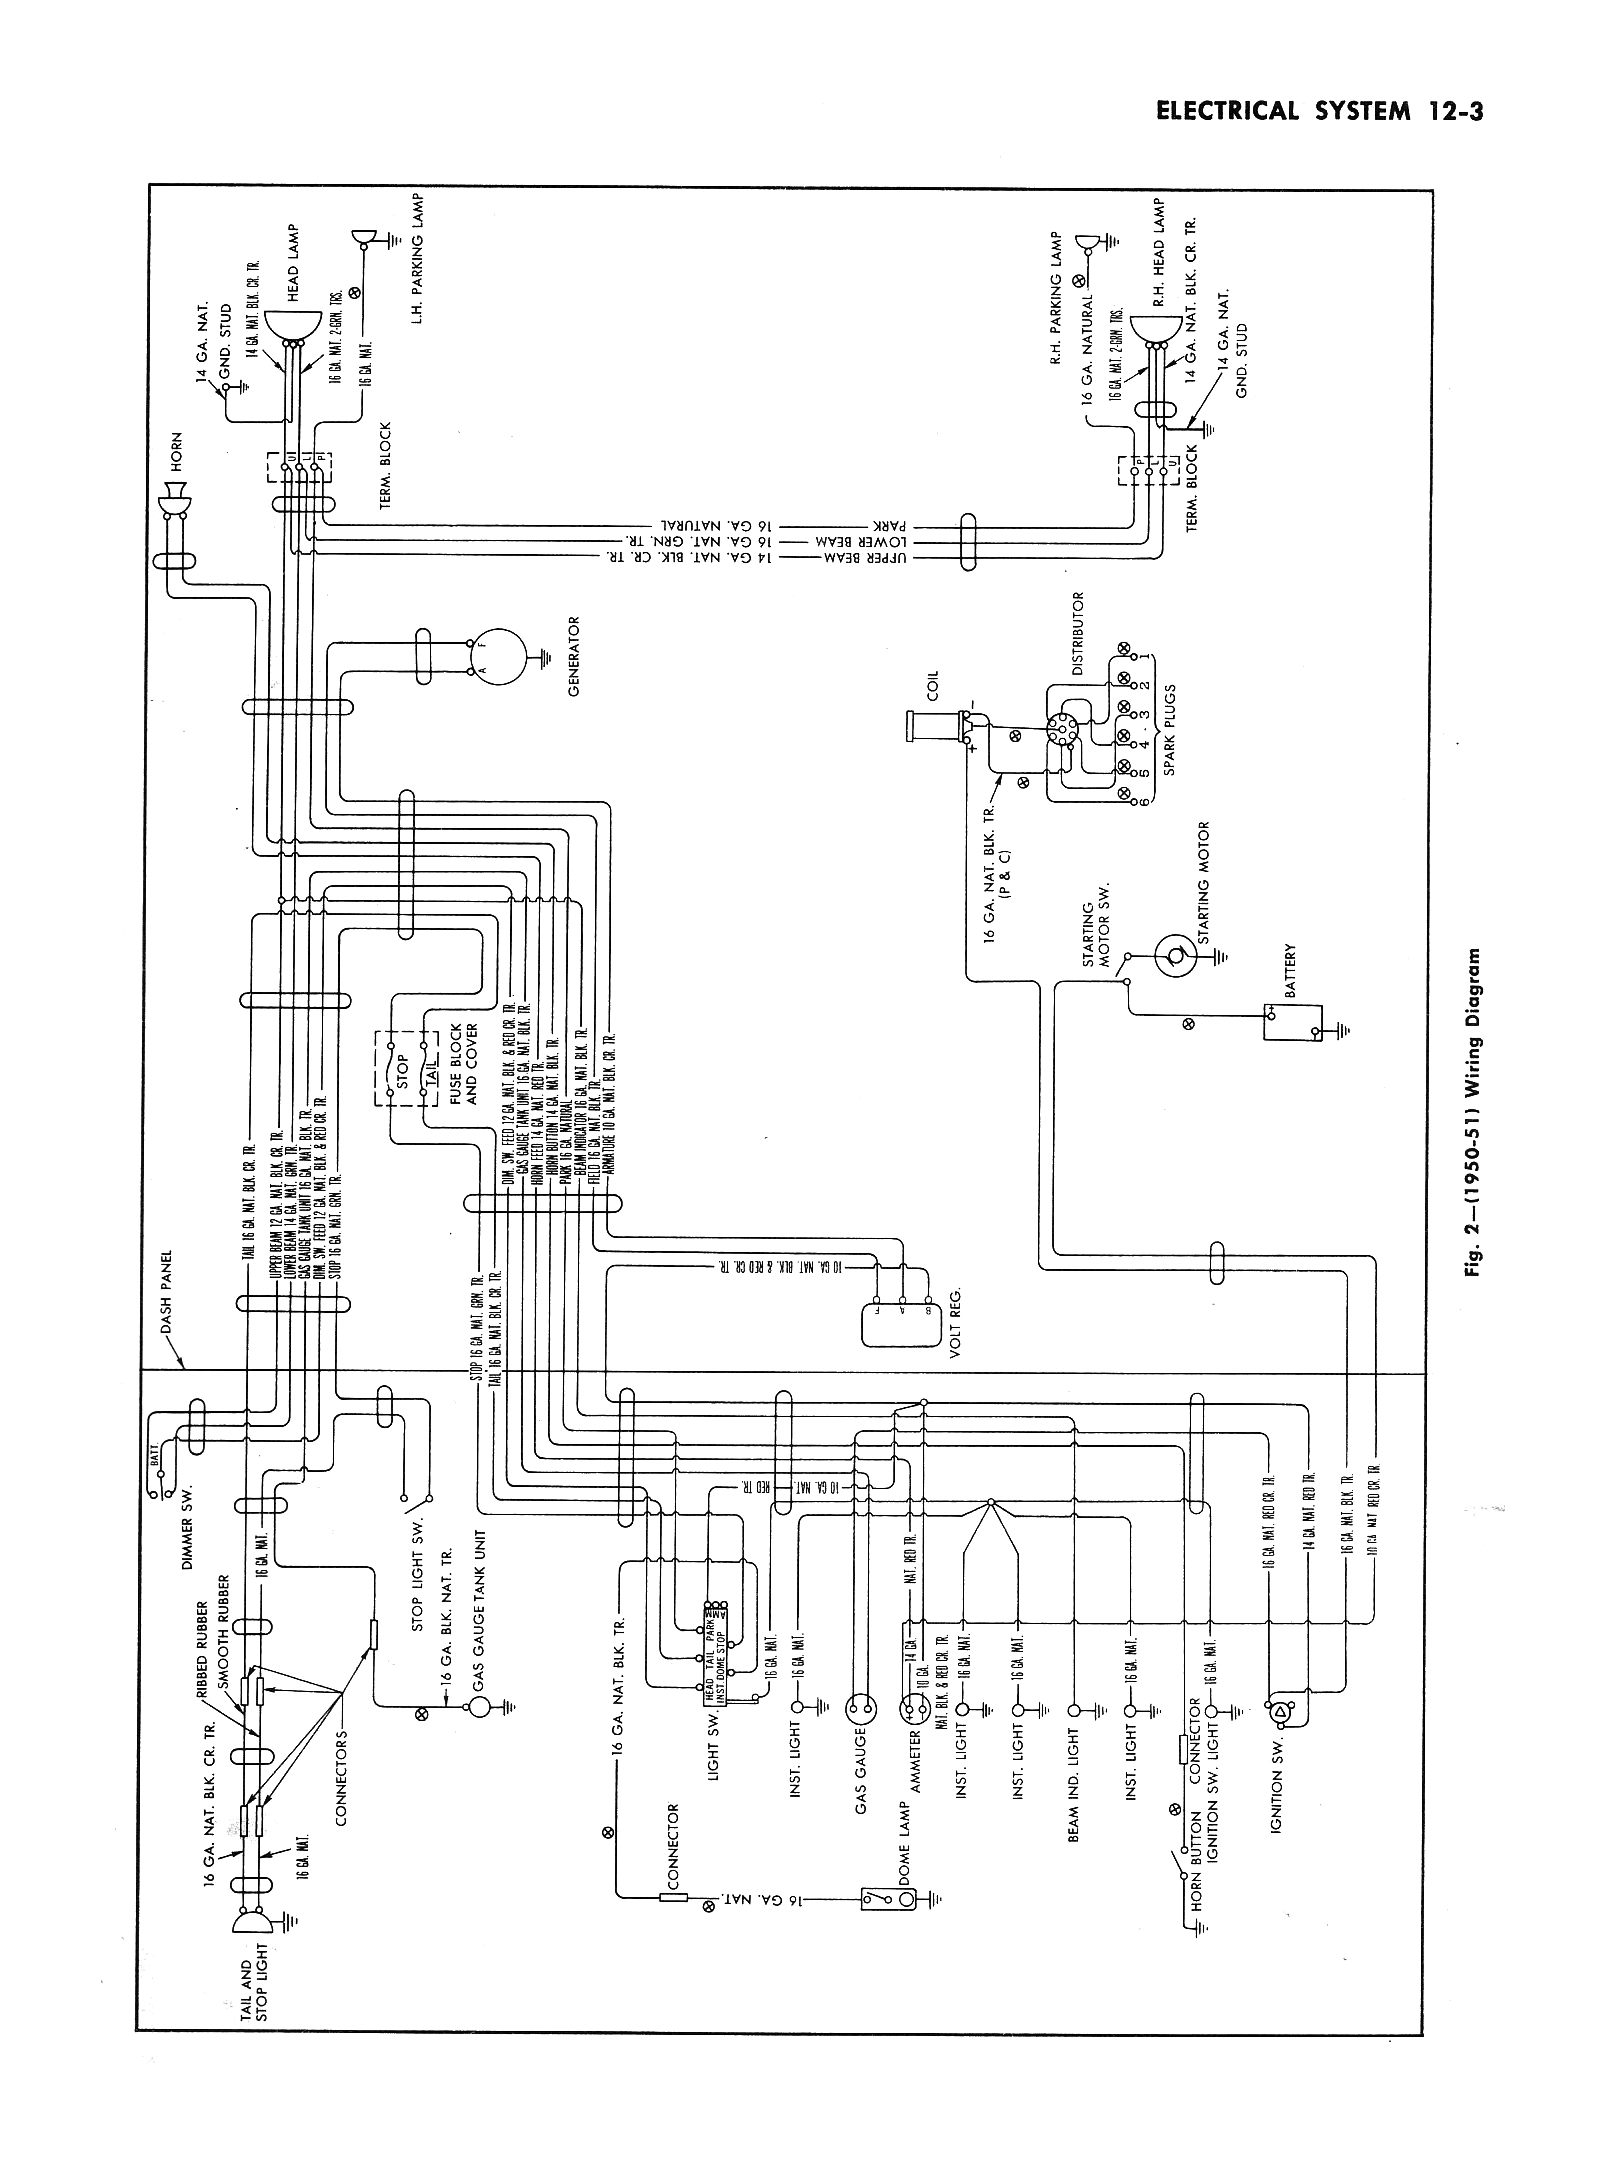 hight resolution of 1935 chevy wiring harness simple wiring schema chevy cobalt wiring harness diagram chevy wiring diagrams 1991